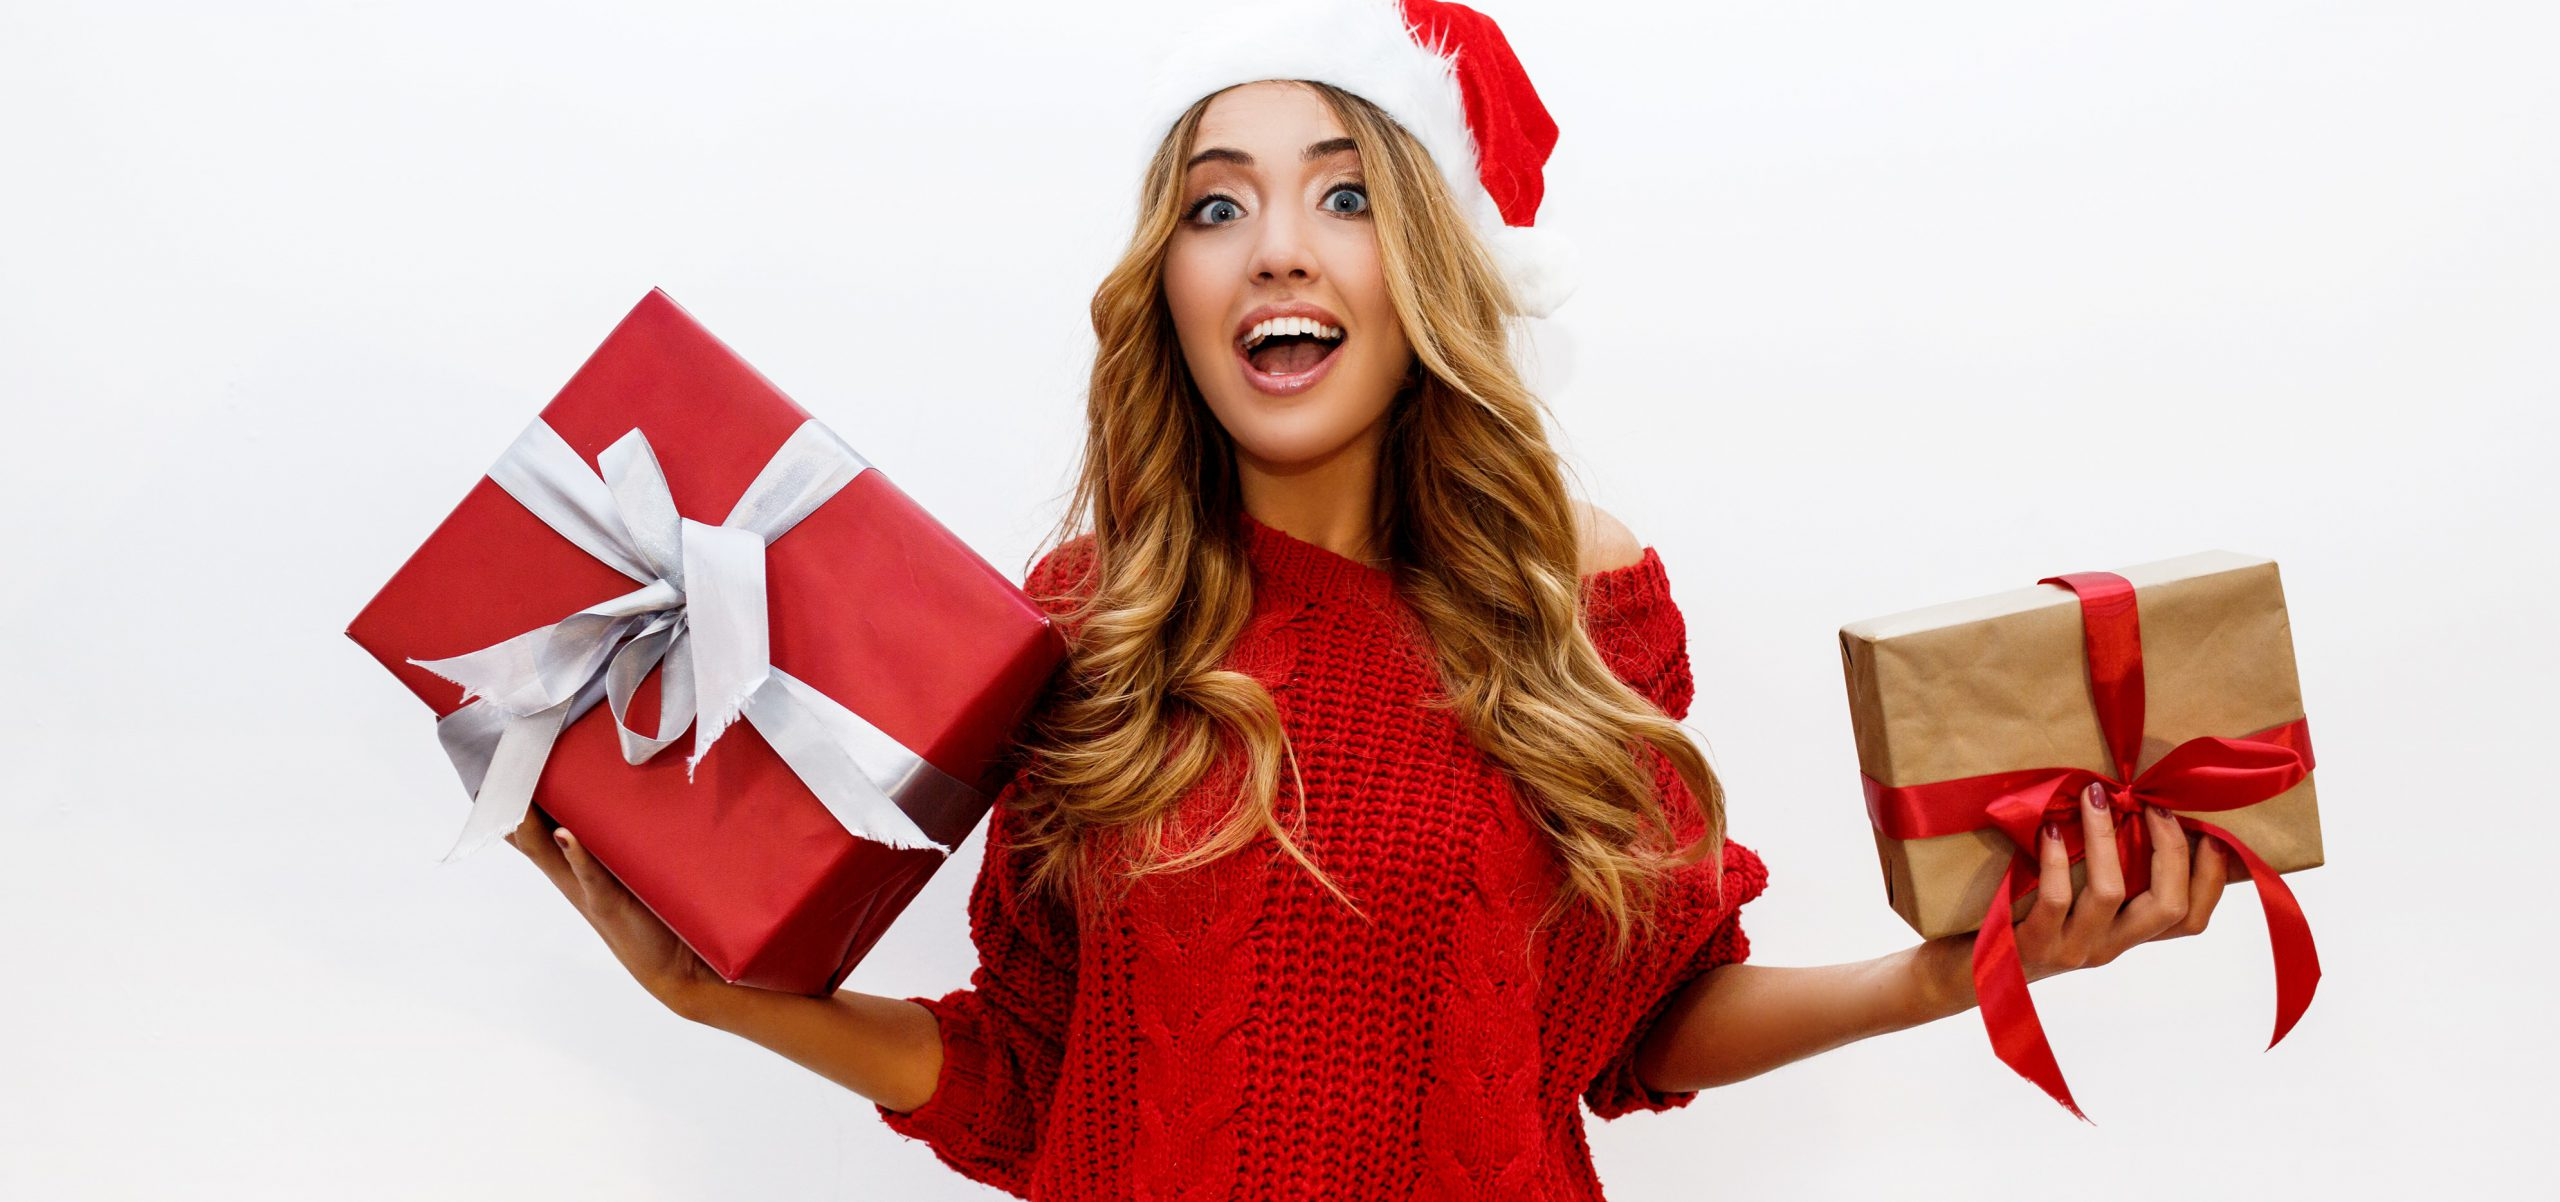 Don't fall into too much debt during holiday shopping